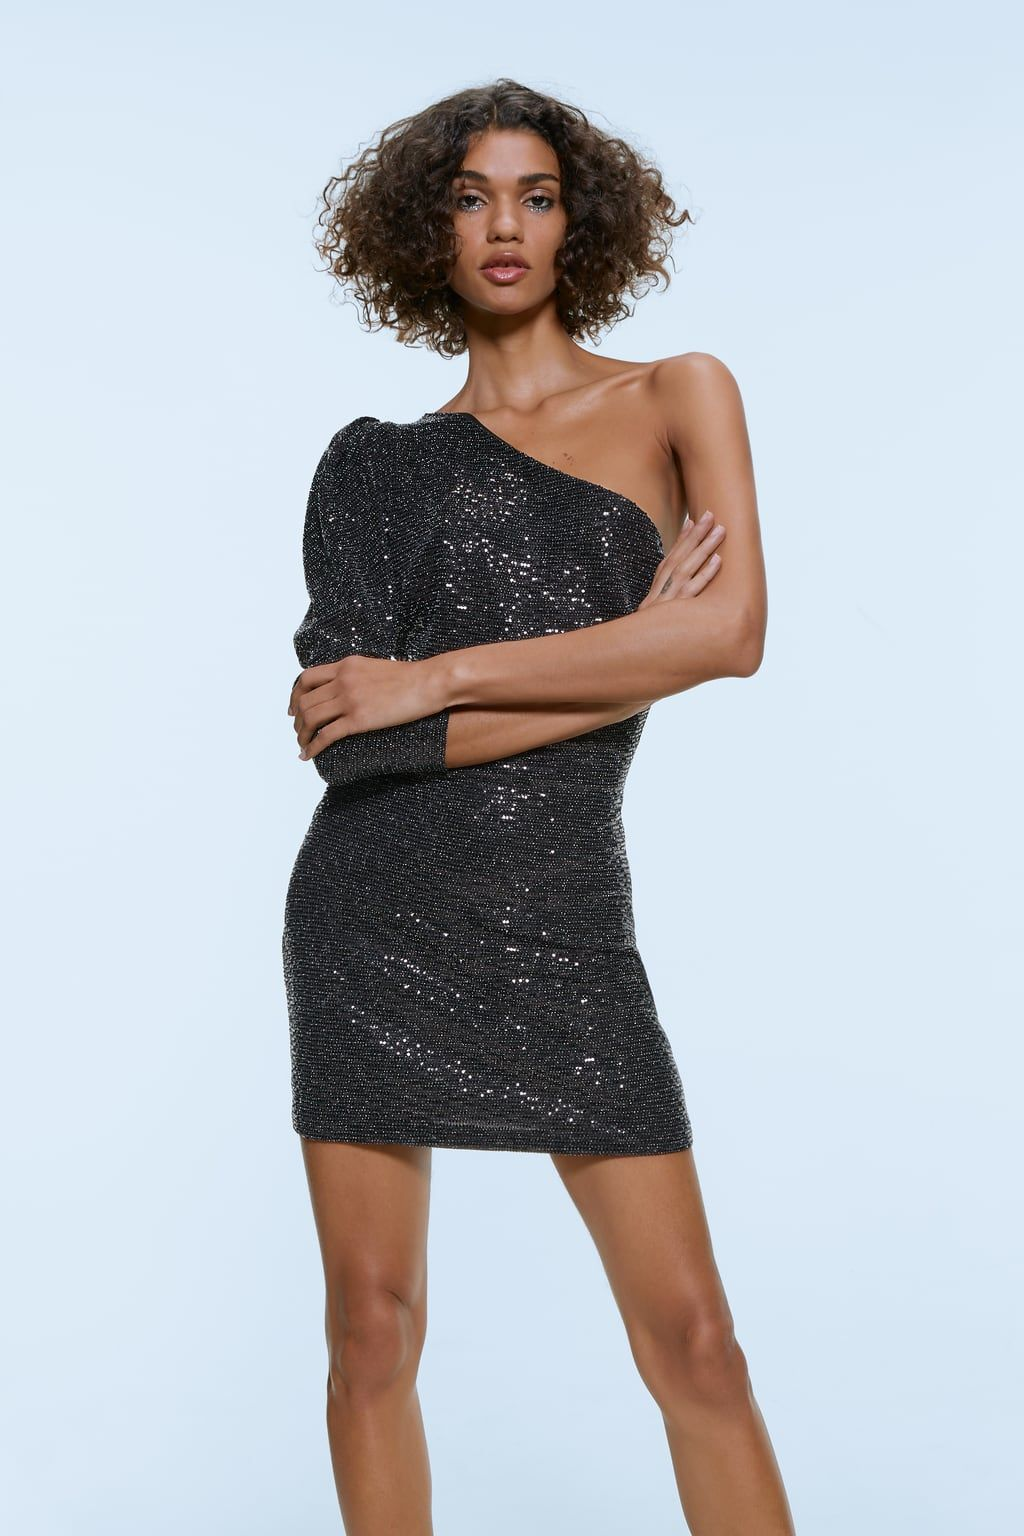 Women S Party Dresses New Collection Online Zara United States Party Dresses For Women Sequin Dress Party Dress